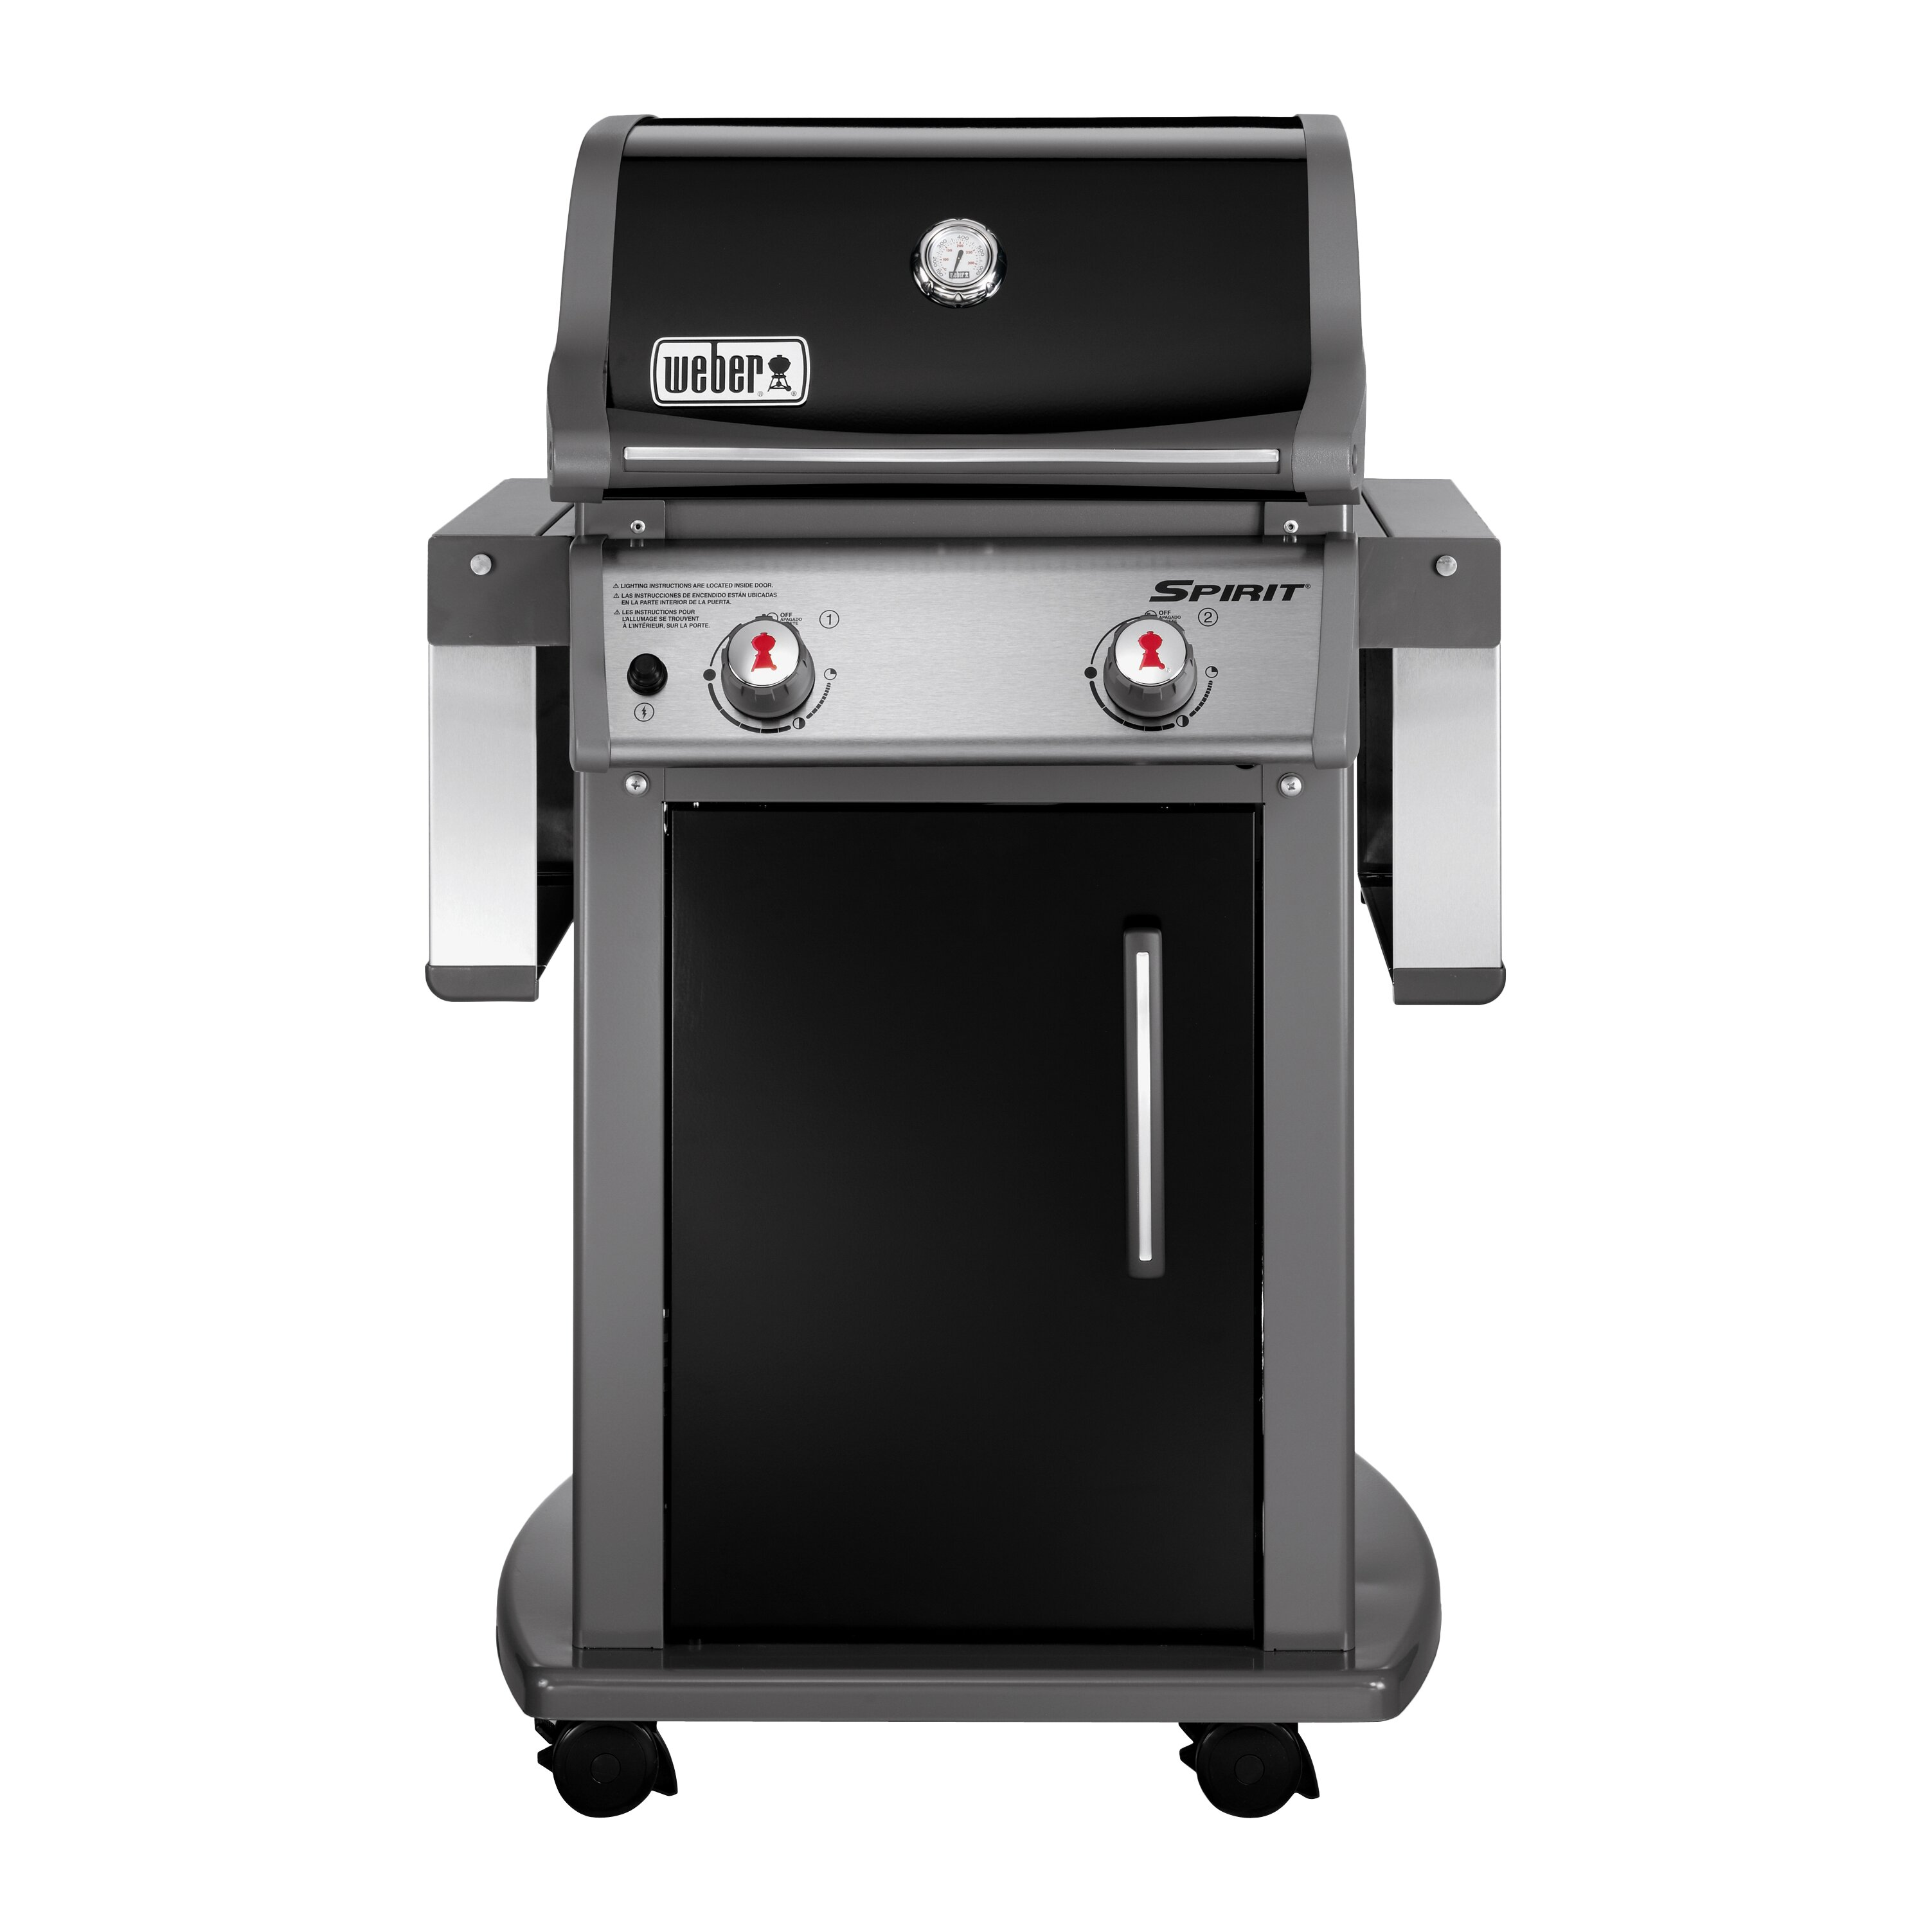 weber spirit e 210 lp gas grill reviews wayfair. Black Bedroom Furniture Sets. Home Design Ideas